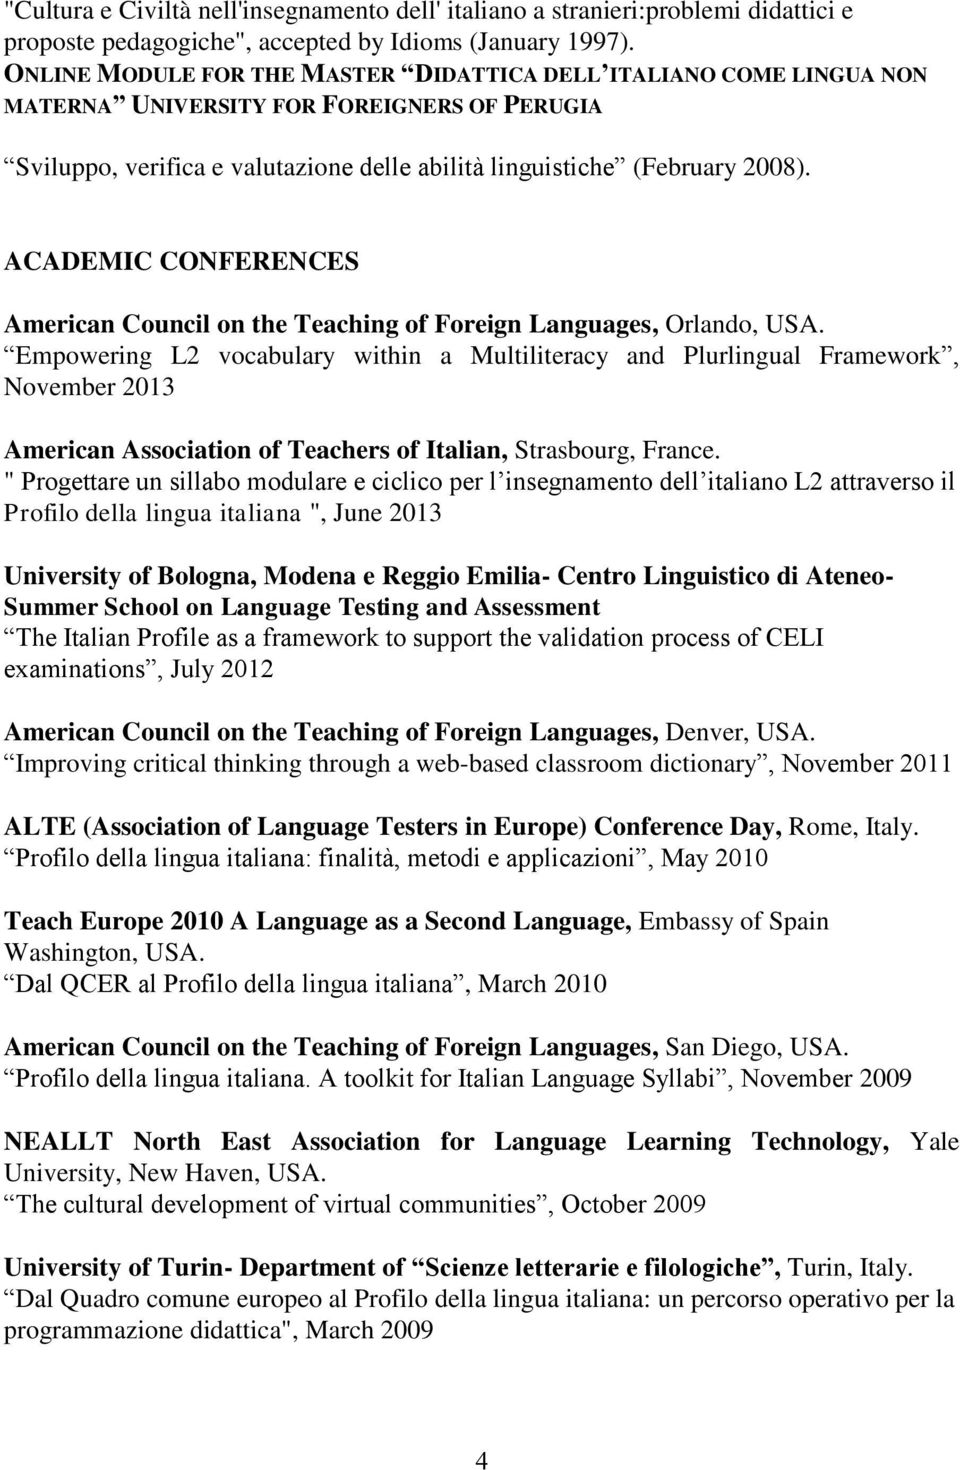 ACADEMIC CONFERENCES American Council on the Teaching of Foreign Languages, Orlando, USA.